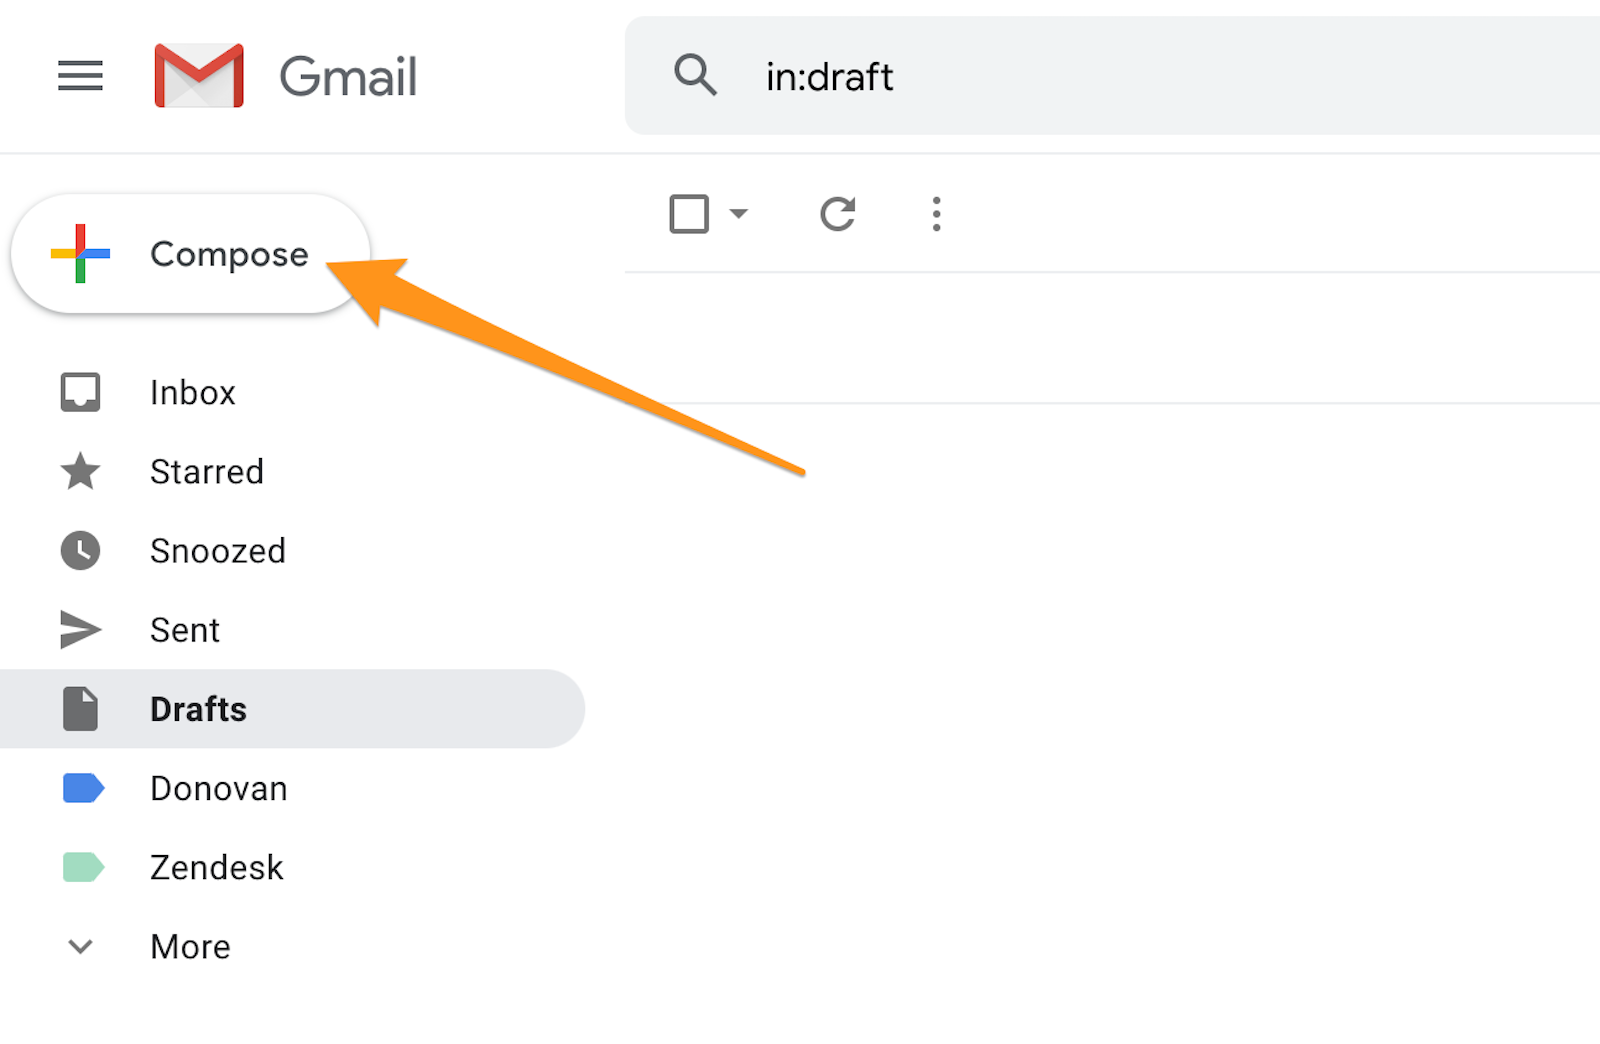 Gmail_Compose.png